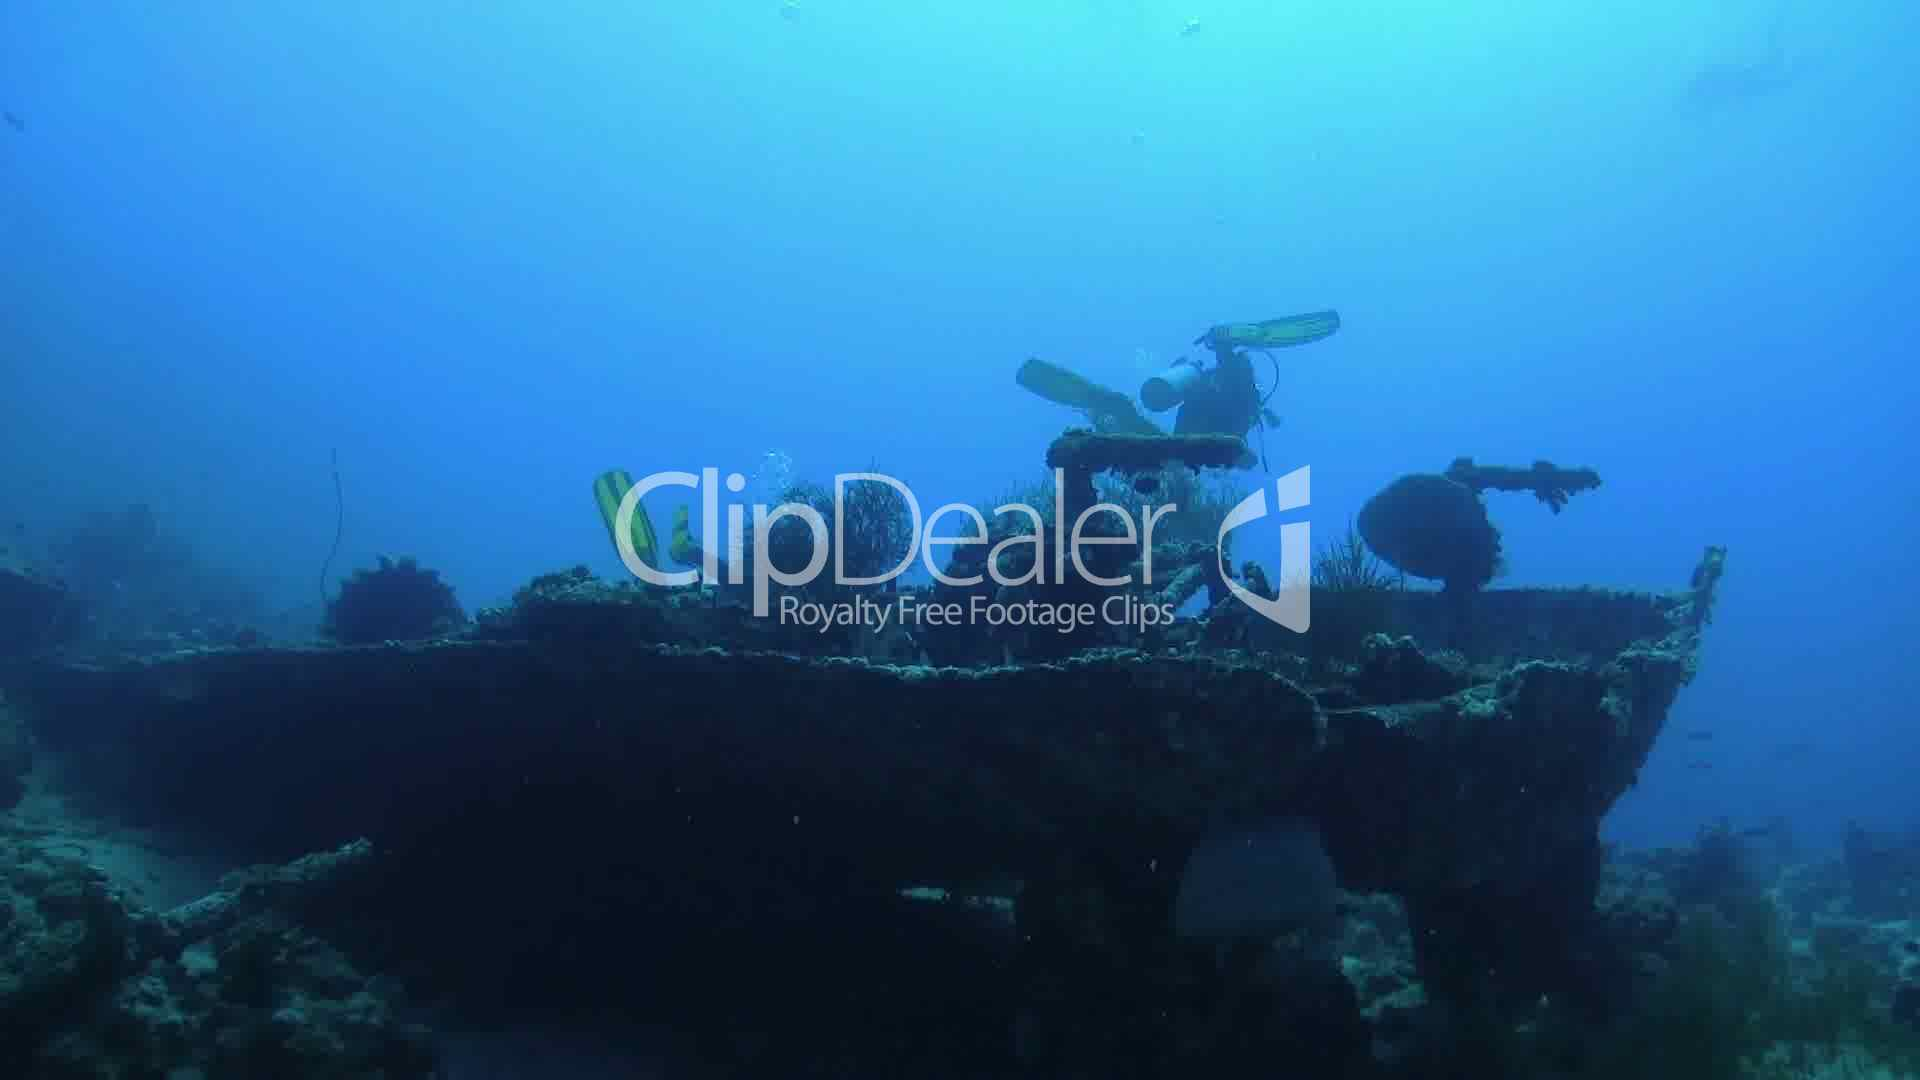 group of divers swims over ship wreck underwater scene royalty